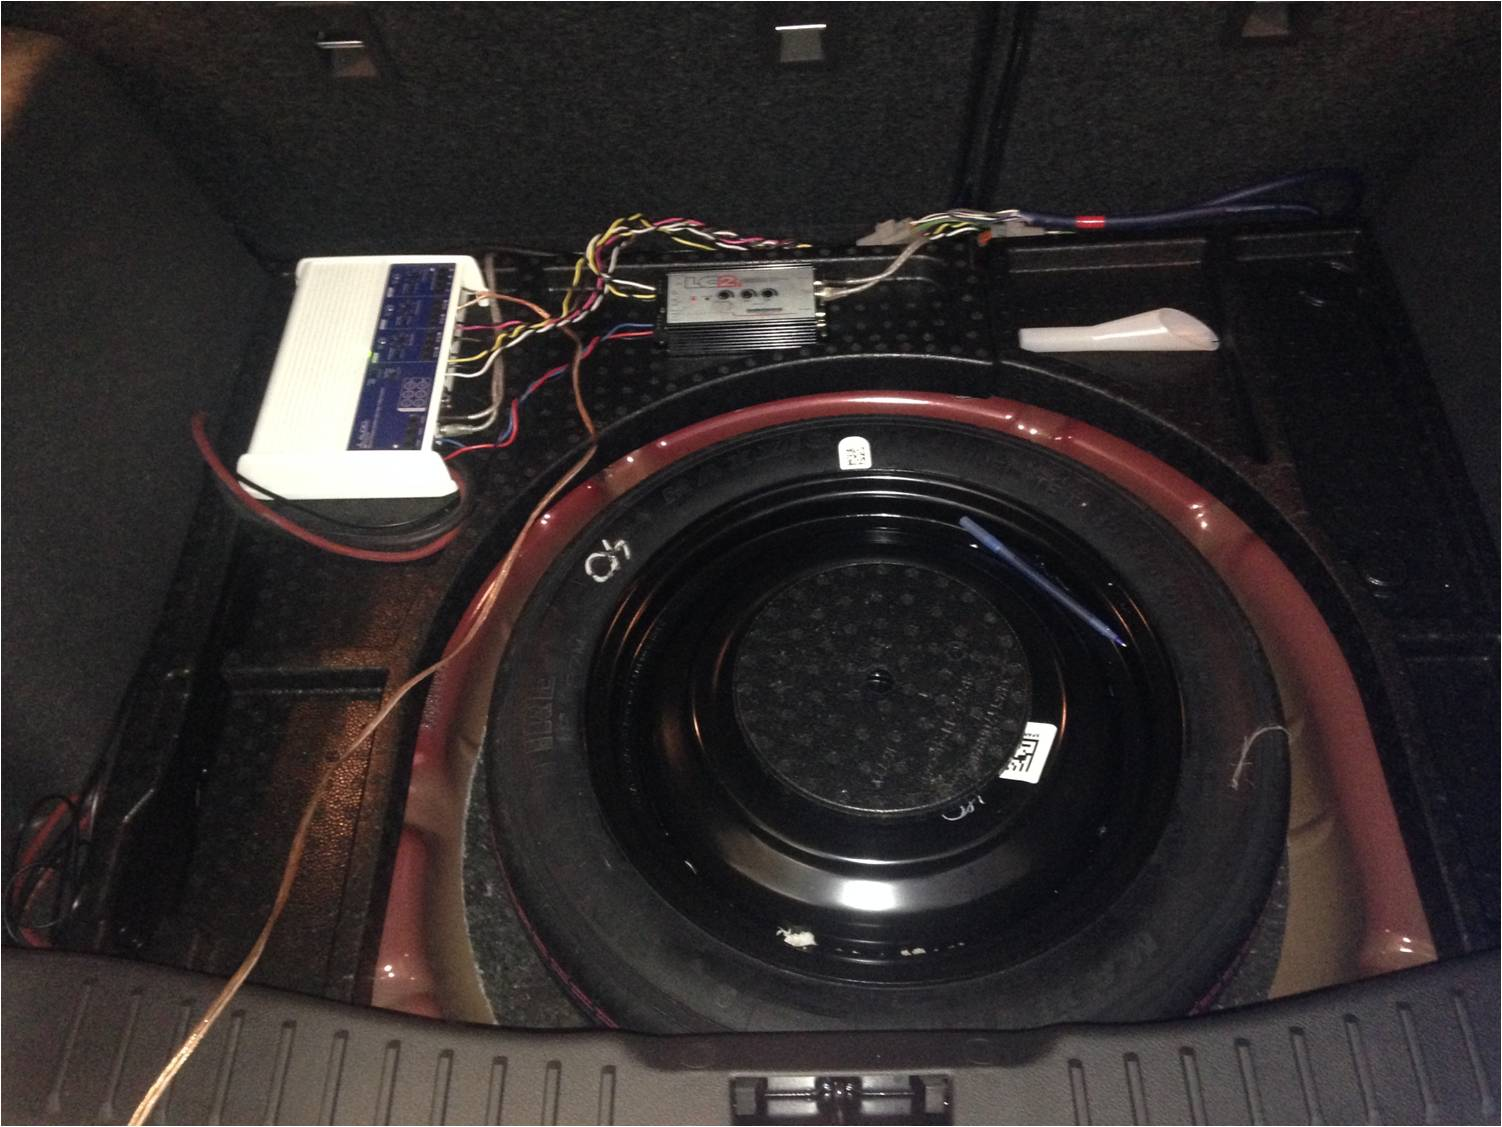 2015 Up Dash Removal And Amp Install Done Ford Focus Forum How To Hook Subwoofer 9 Set